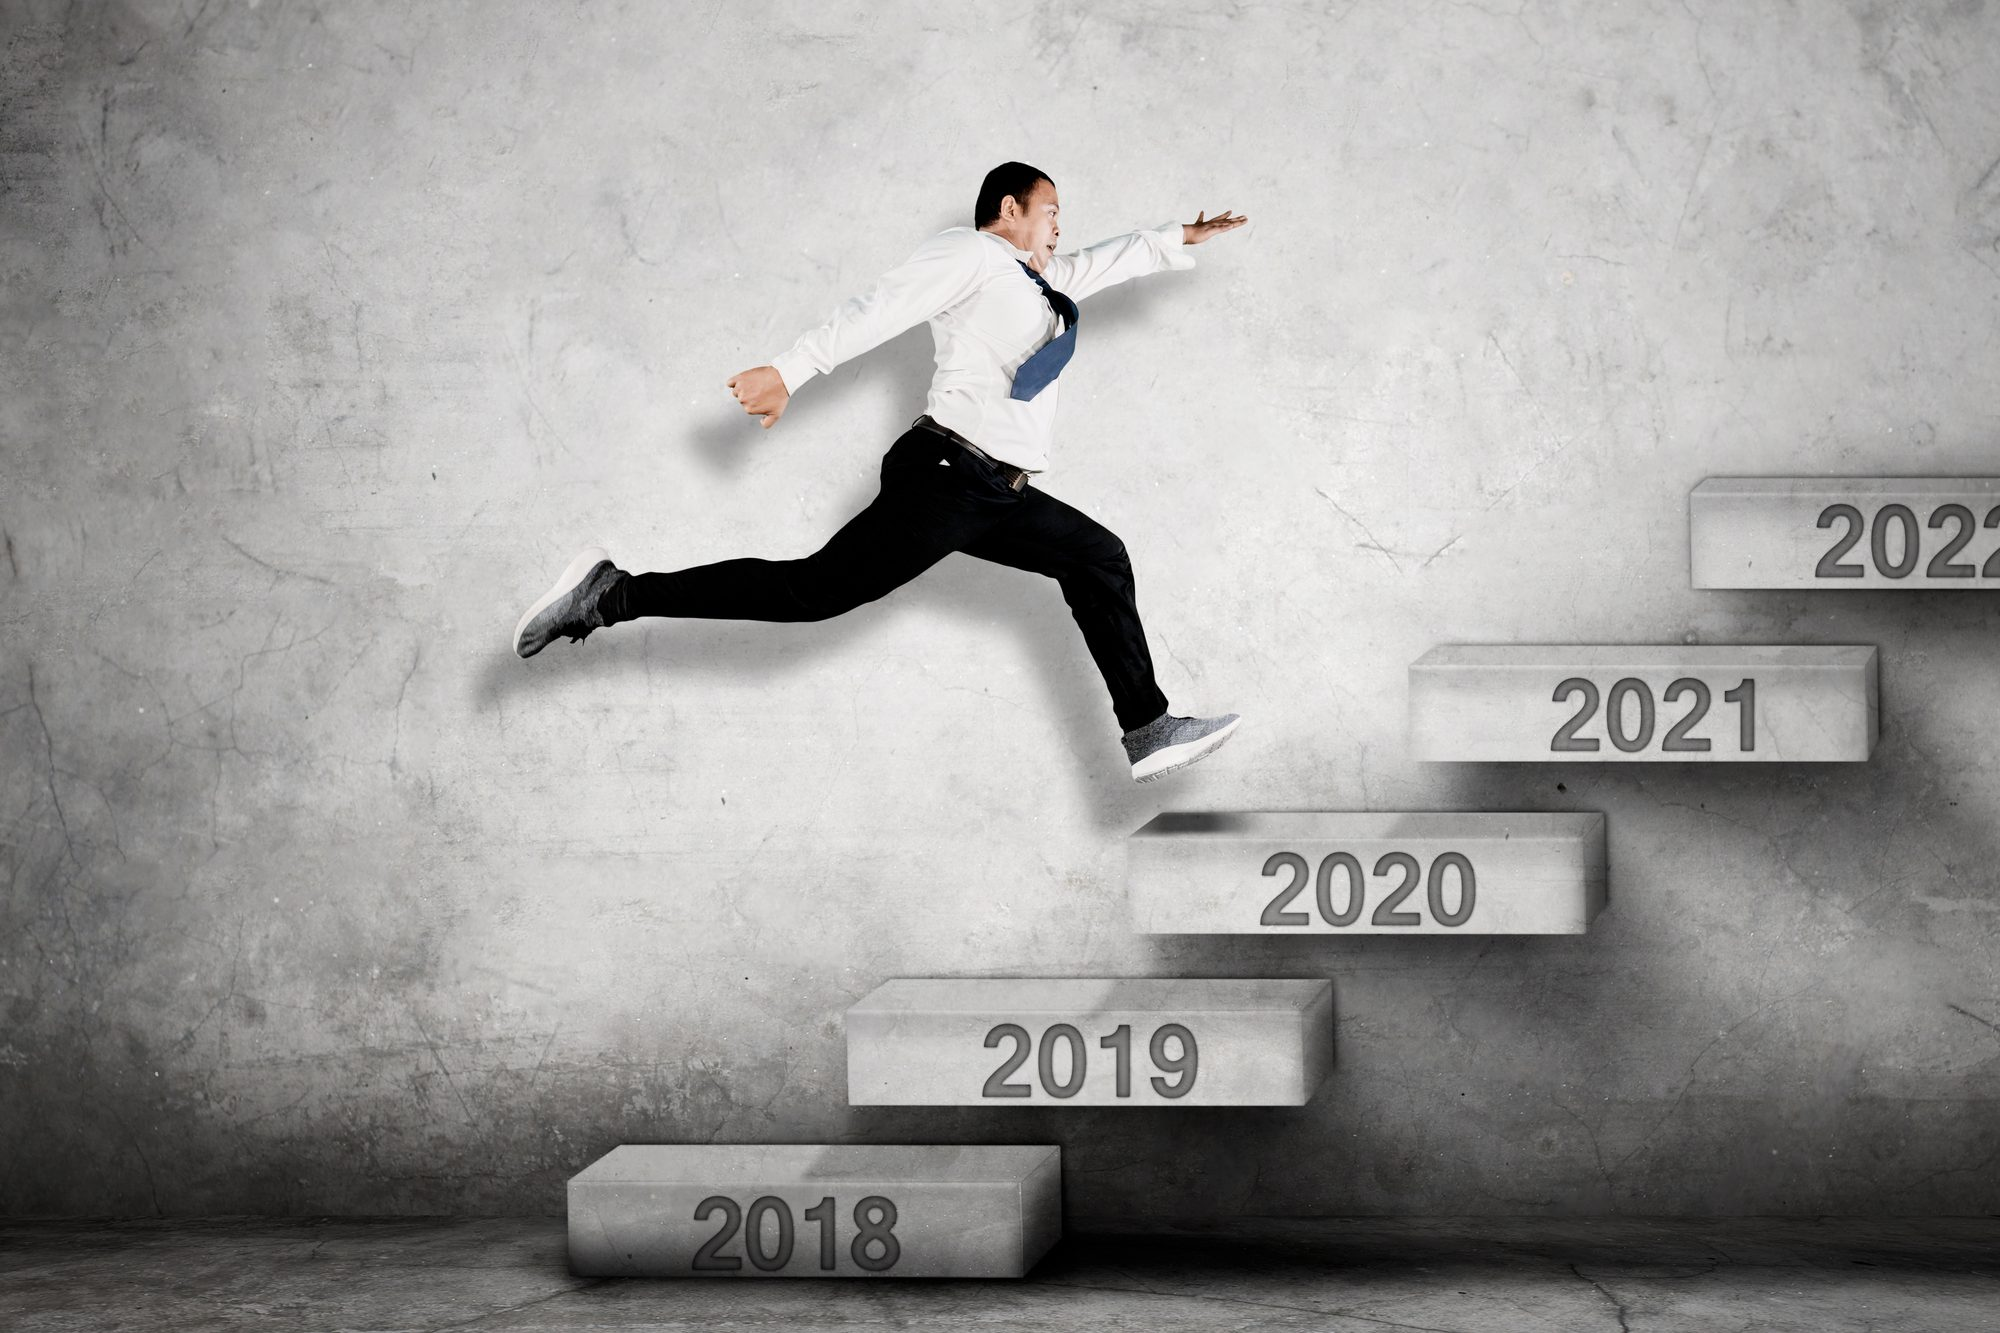 10 Ways an Automotive Consultant Can Help Set Up 2021 for Success